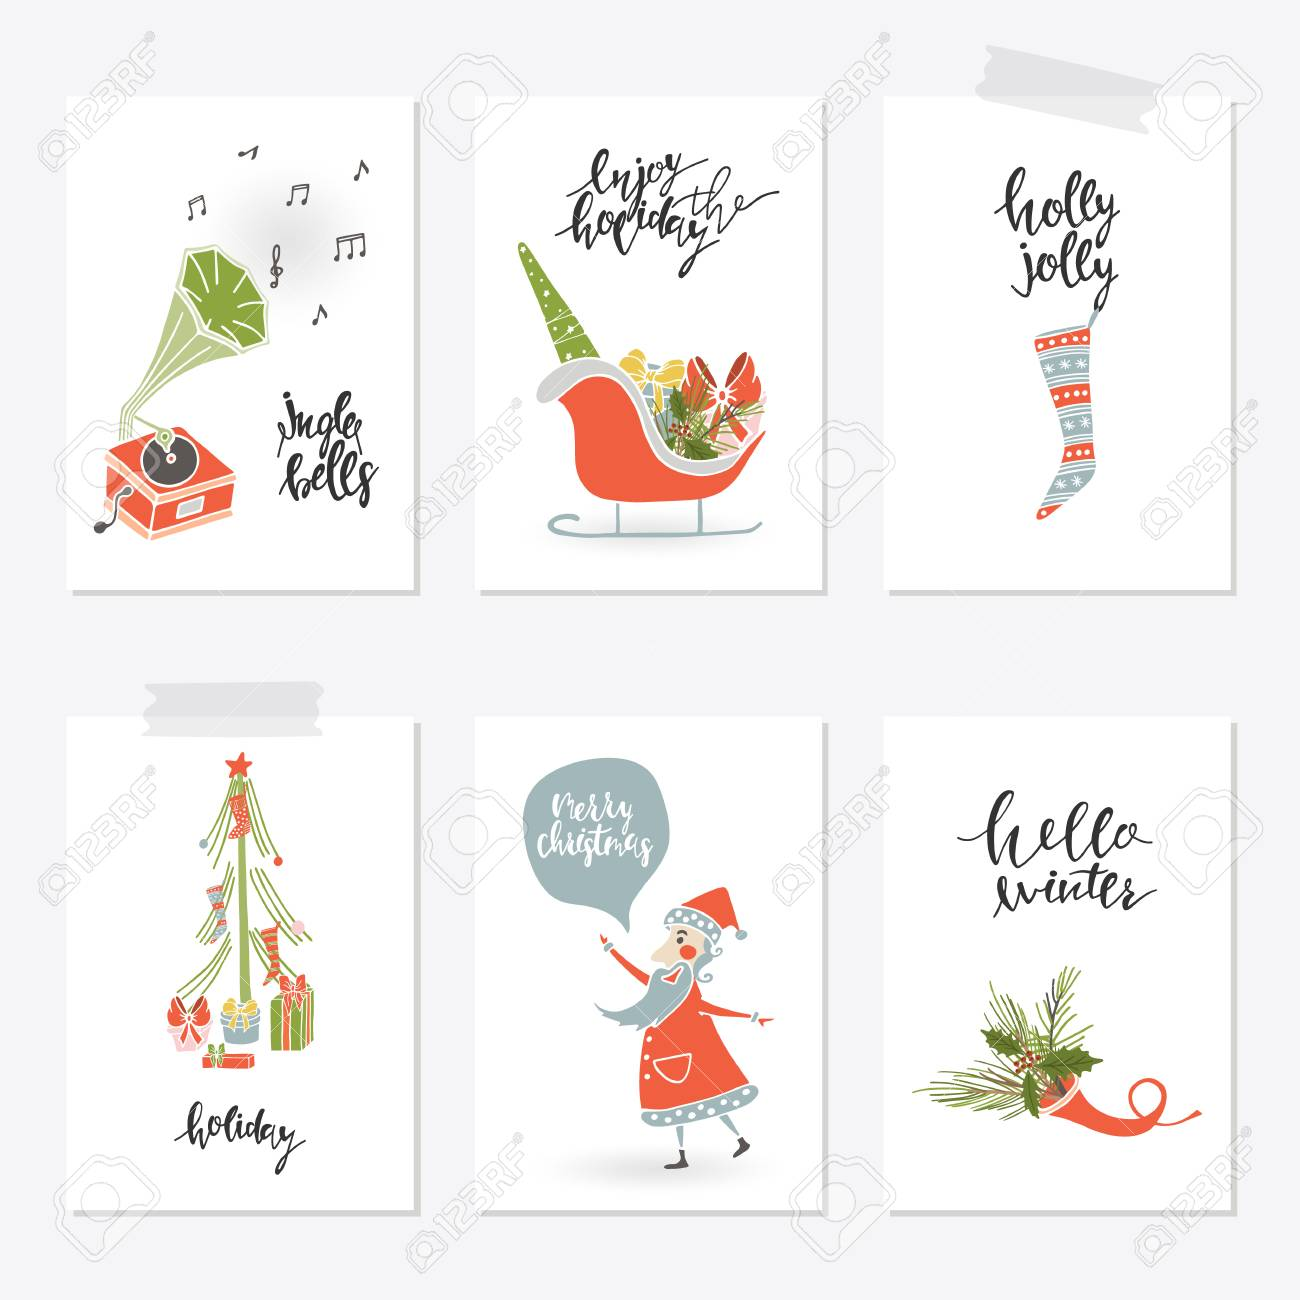 Collection Merry Christmas Gift Cards Royalty Free Cliparts